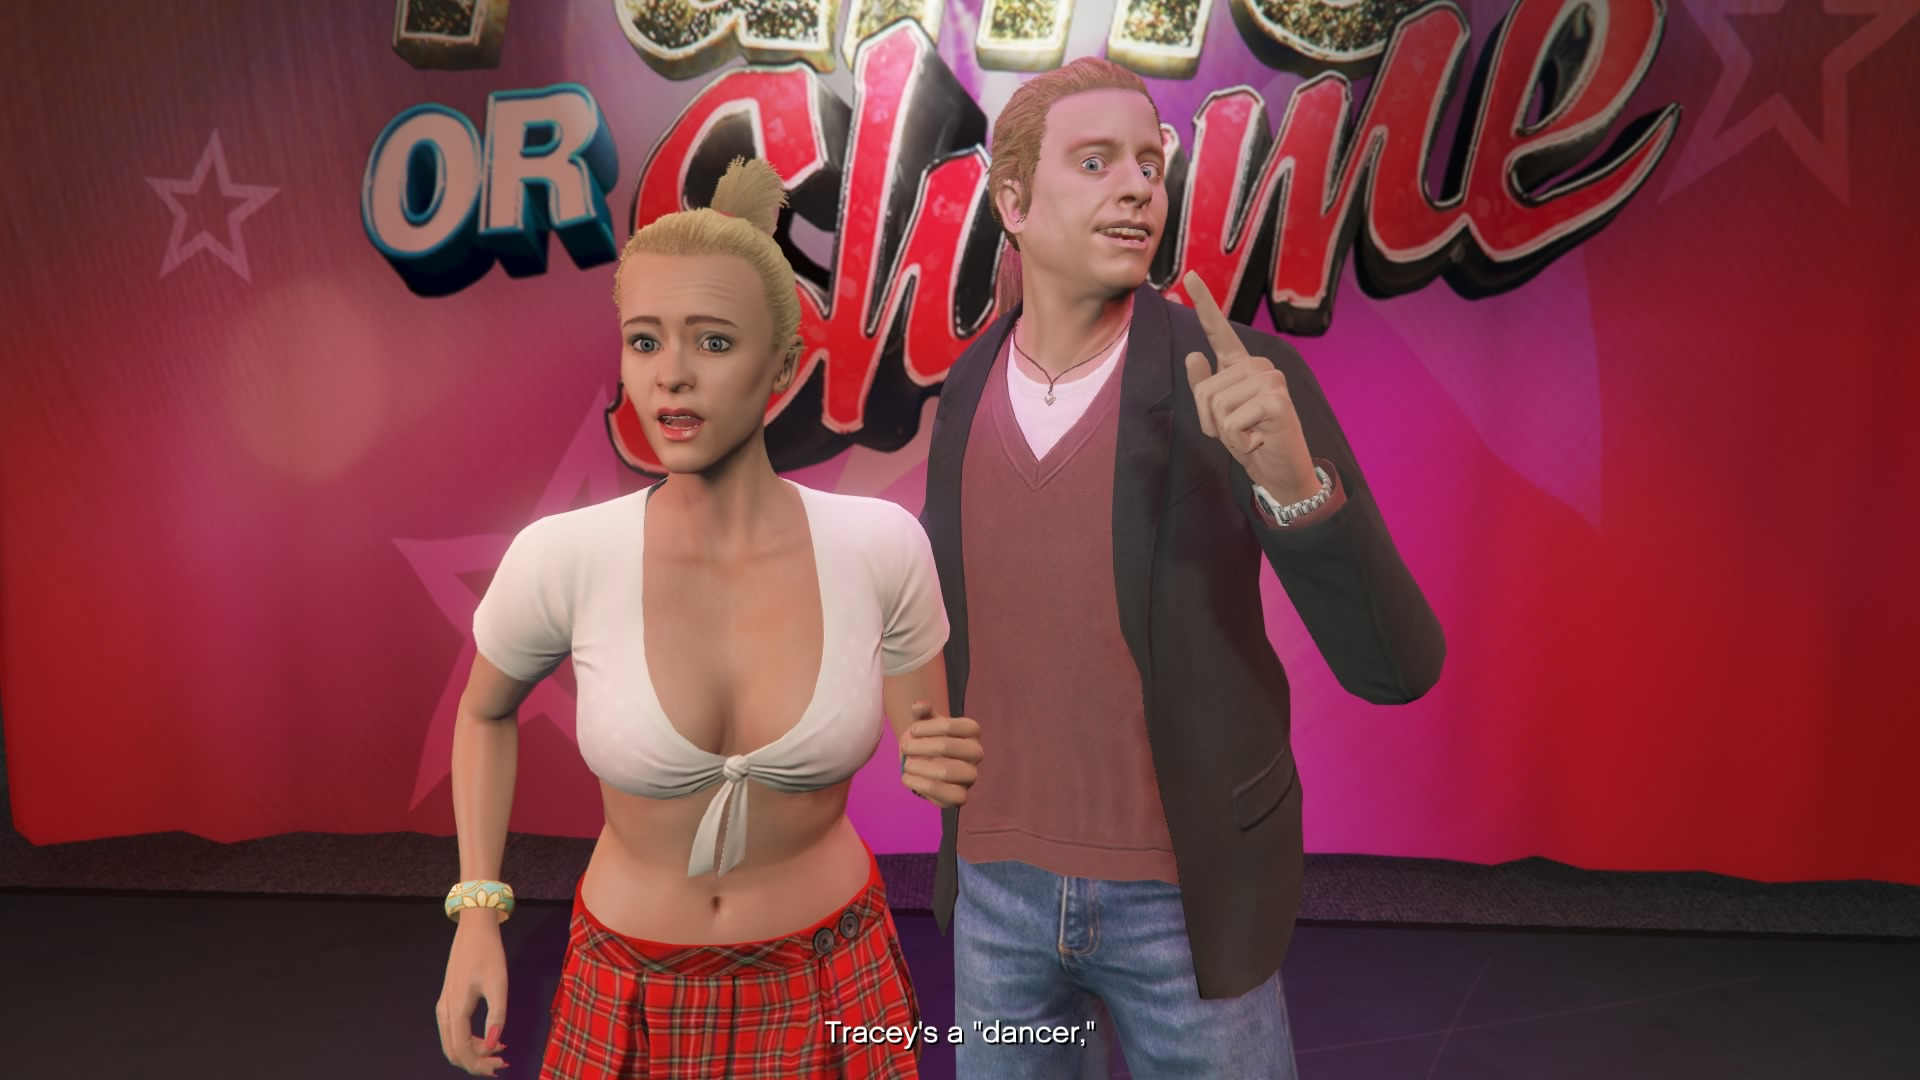 Gta 5 franklin dating tracey thurman 6